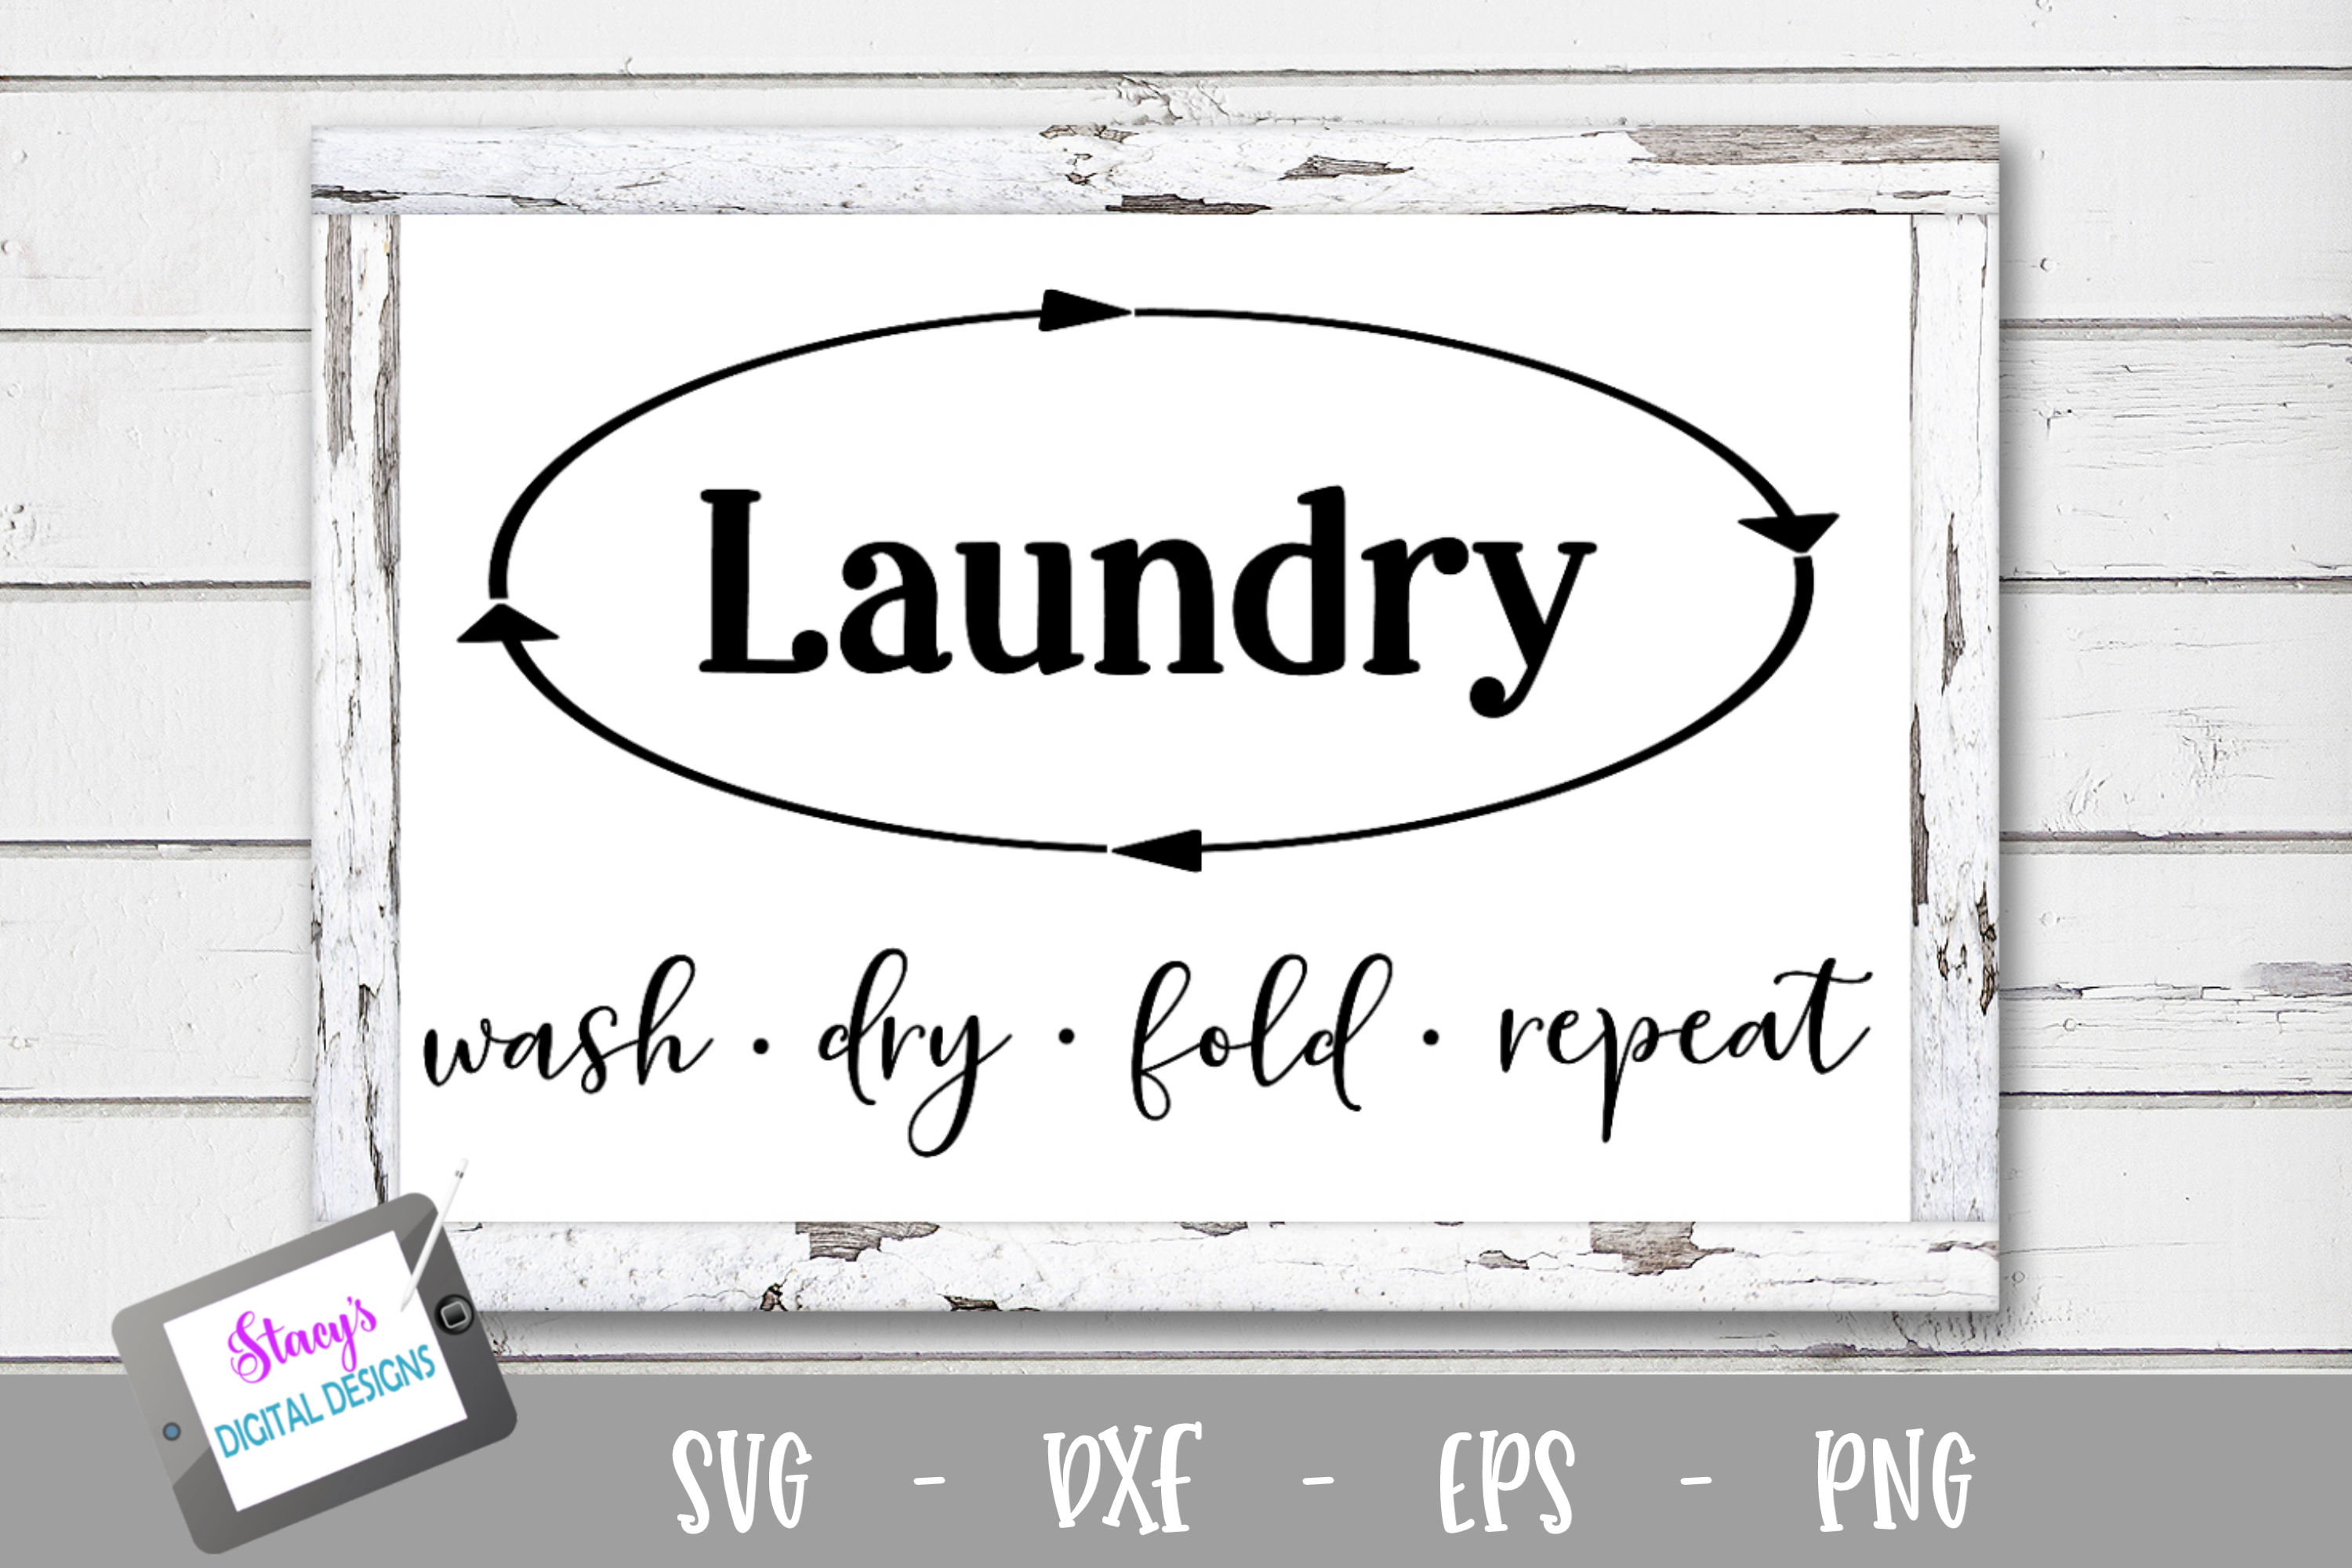 Laundry SVG - Wash dry fold repeat example image 1